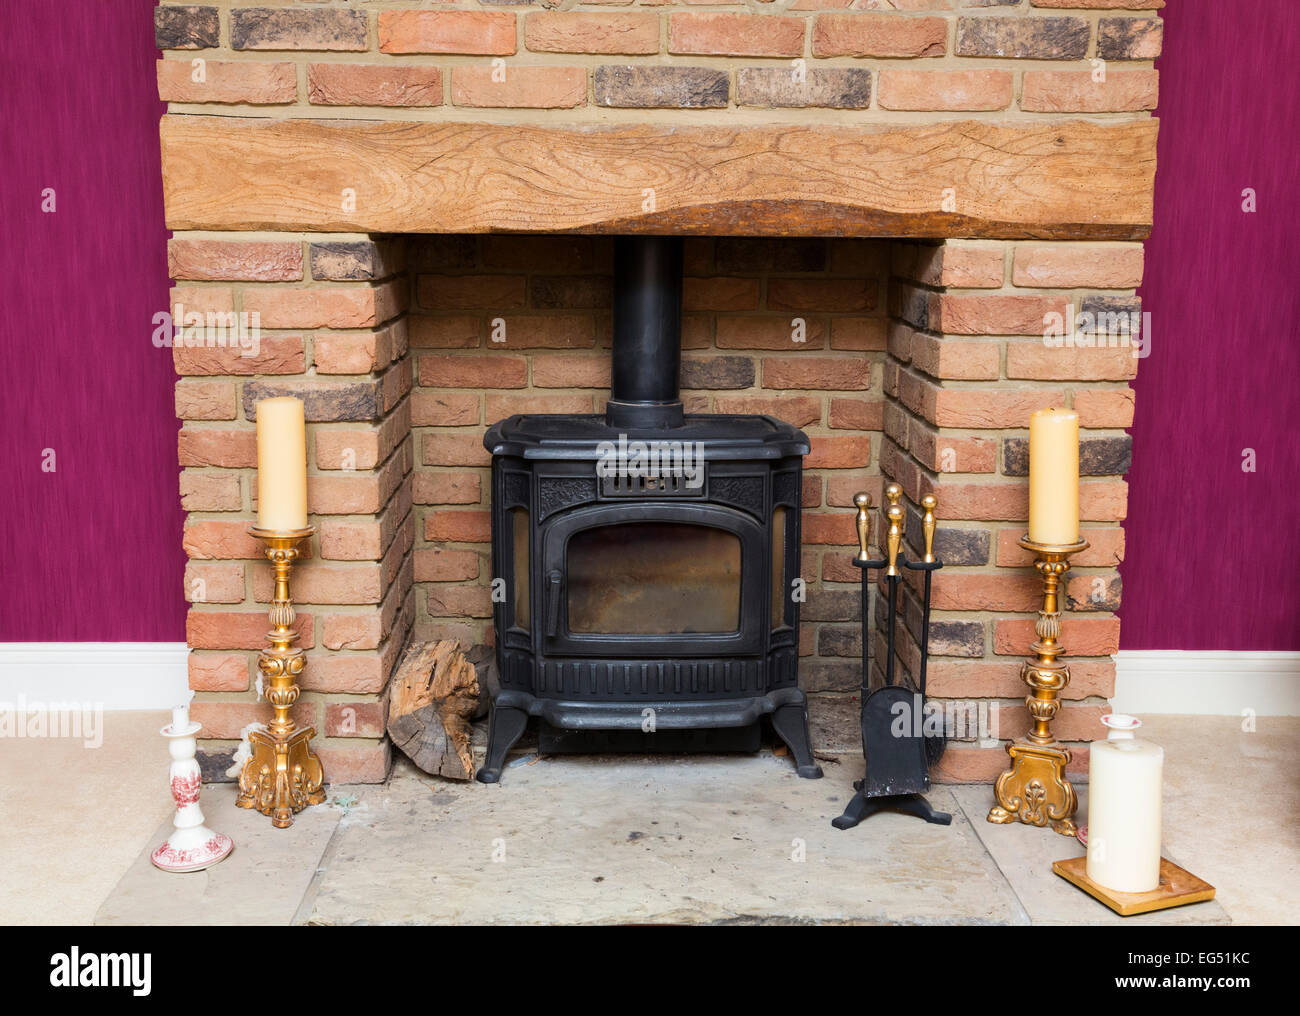 Cast Iron Fireplace Stock Photos Amp Cast Iron Fireplace